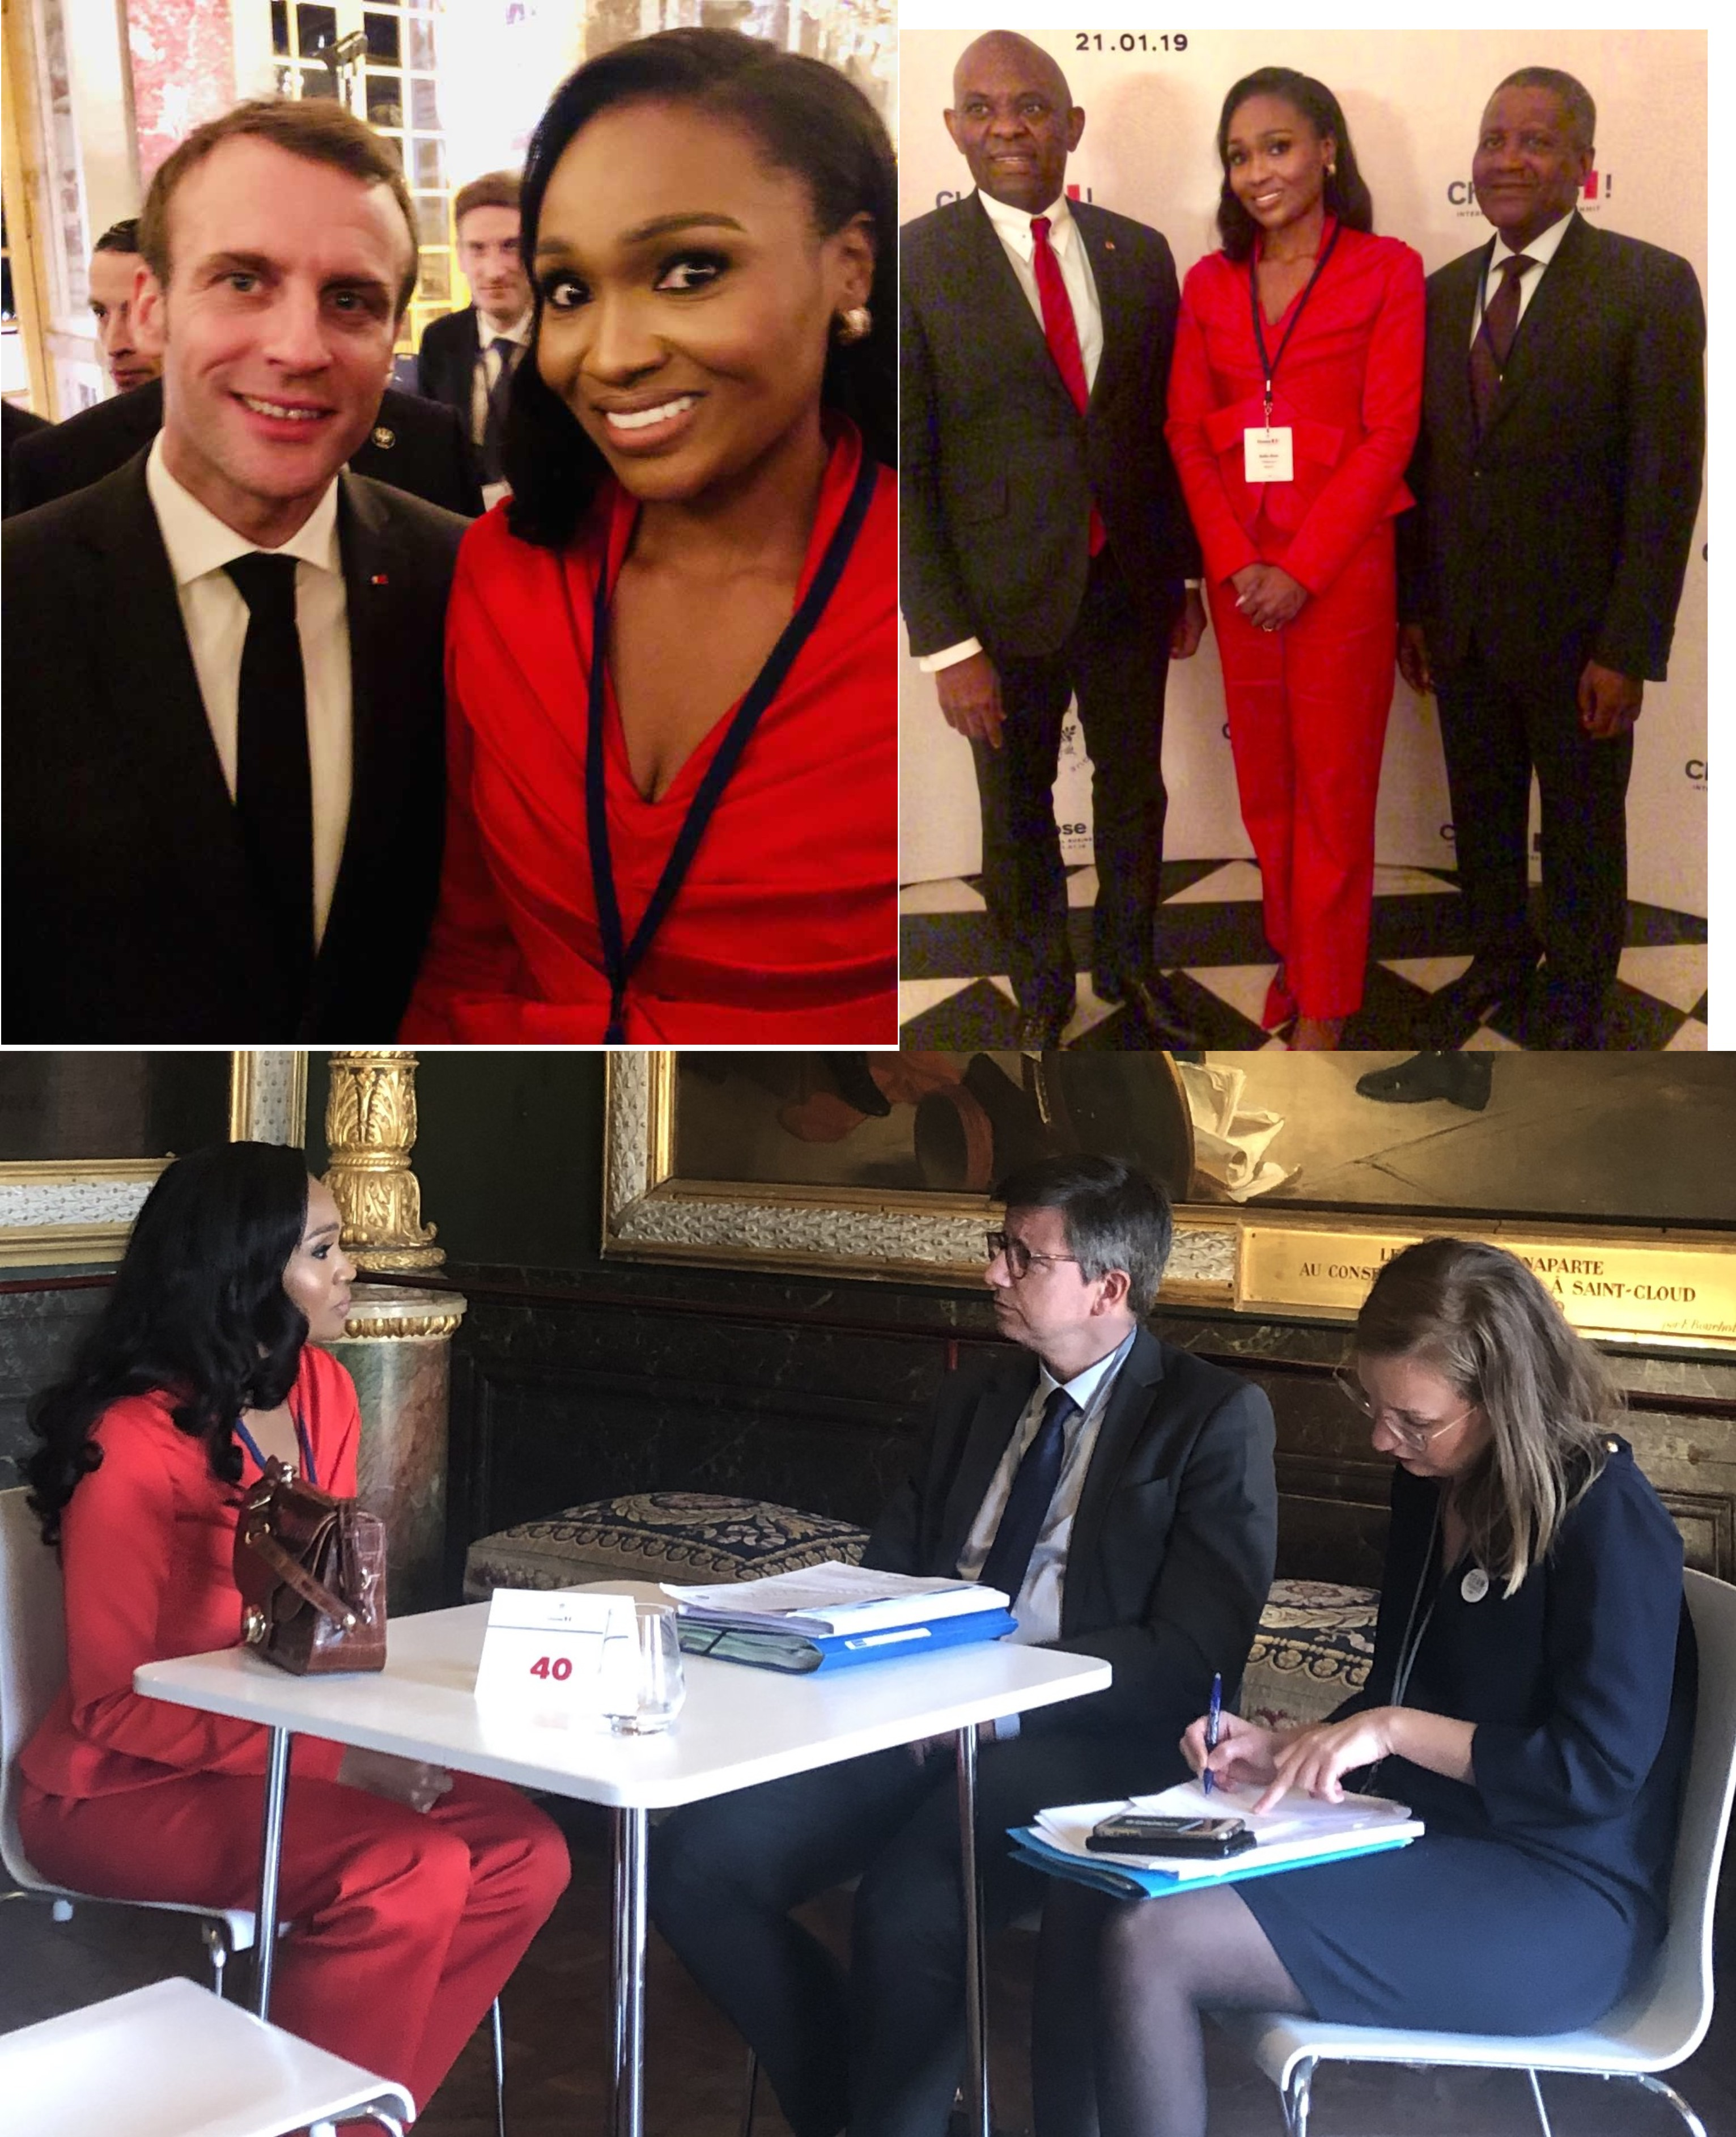 Glo signs deal with Nokia Alcatel-Lucent •Bella Disu, Patrick Pouyanné, Aliko Dangote, 147 Global CEOs attend Choose France Summit at Château de Versailles